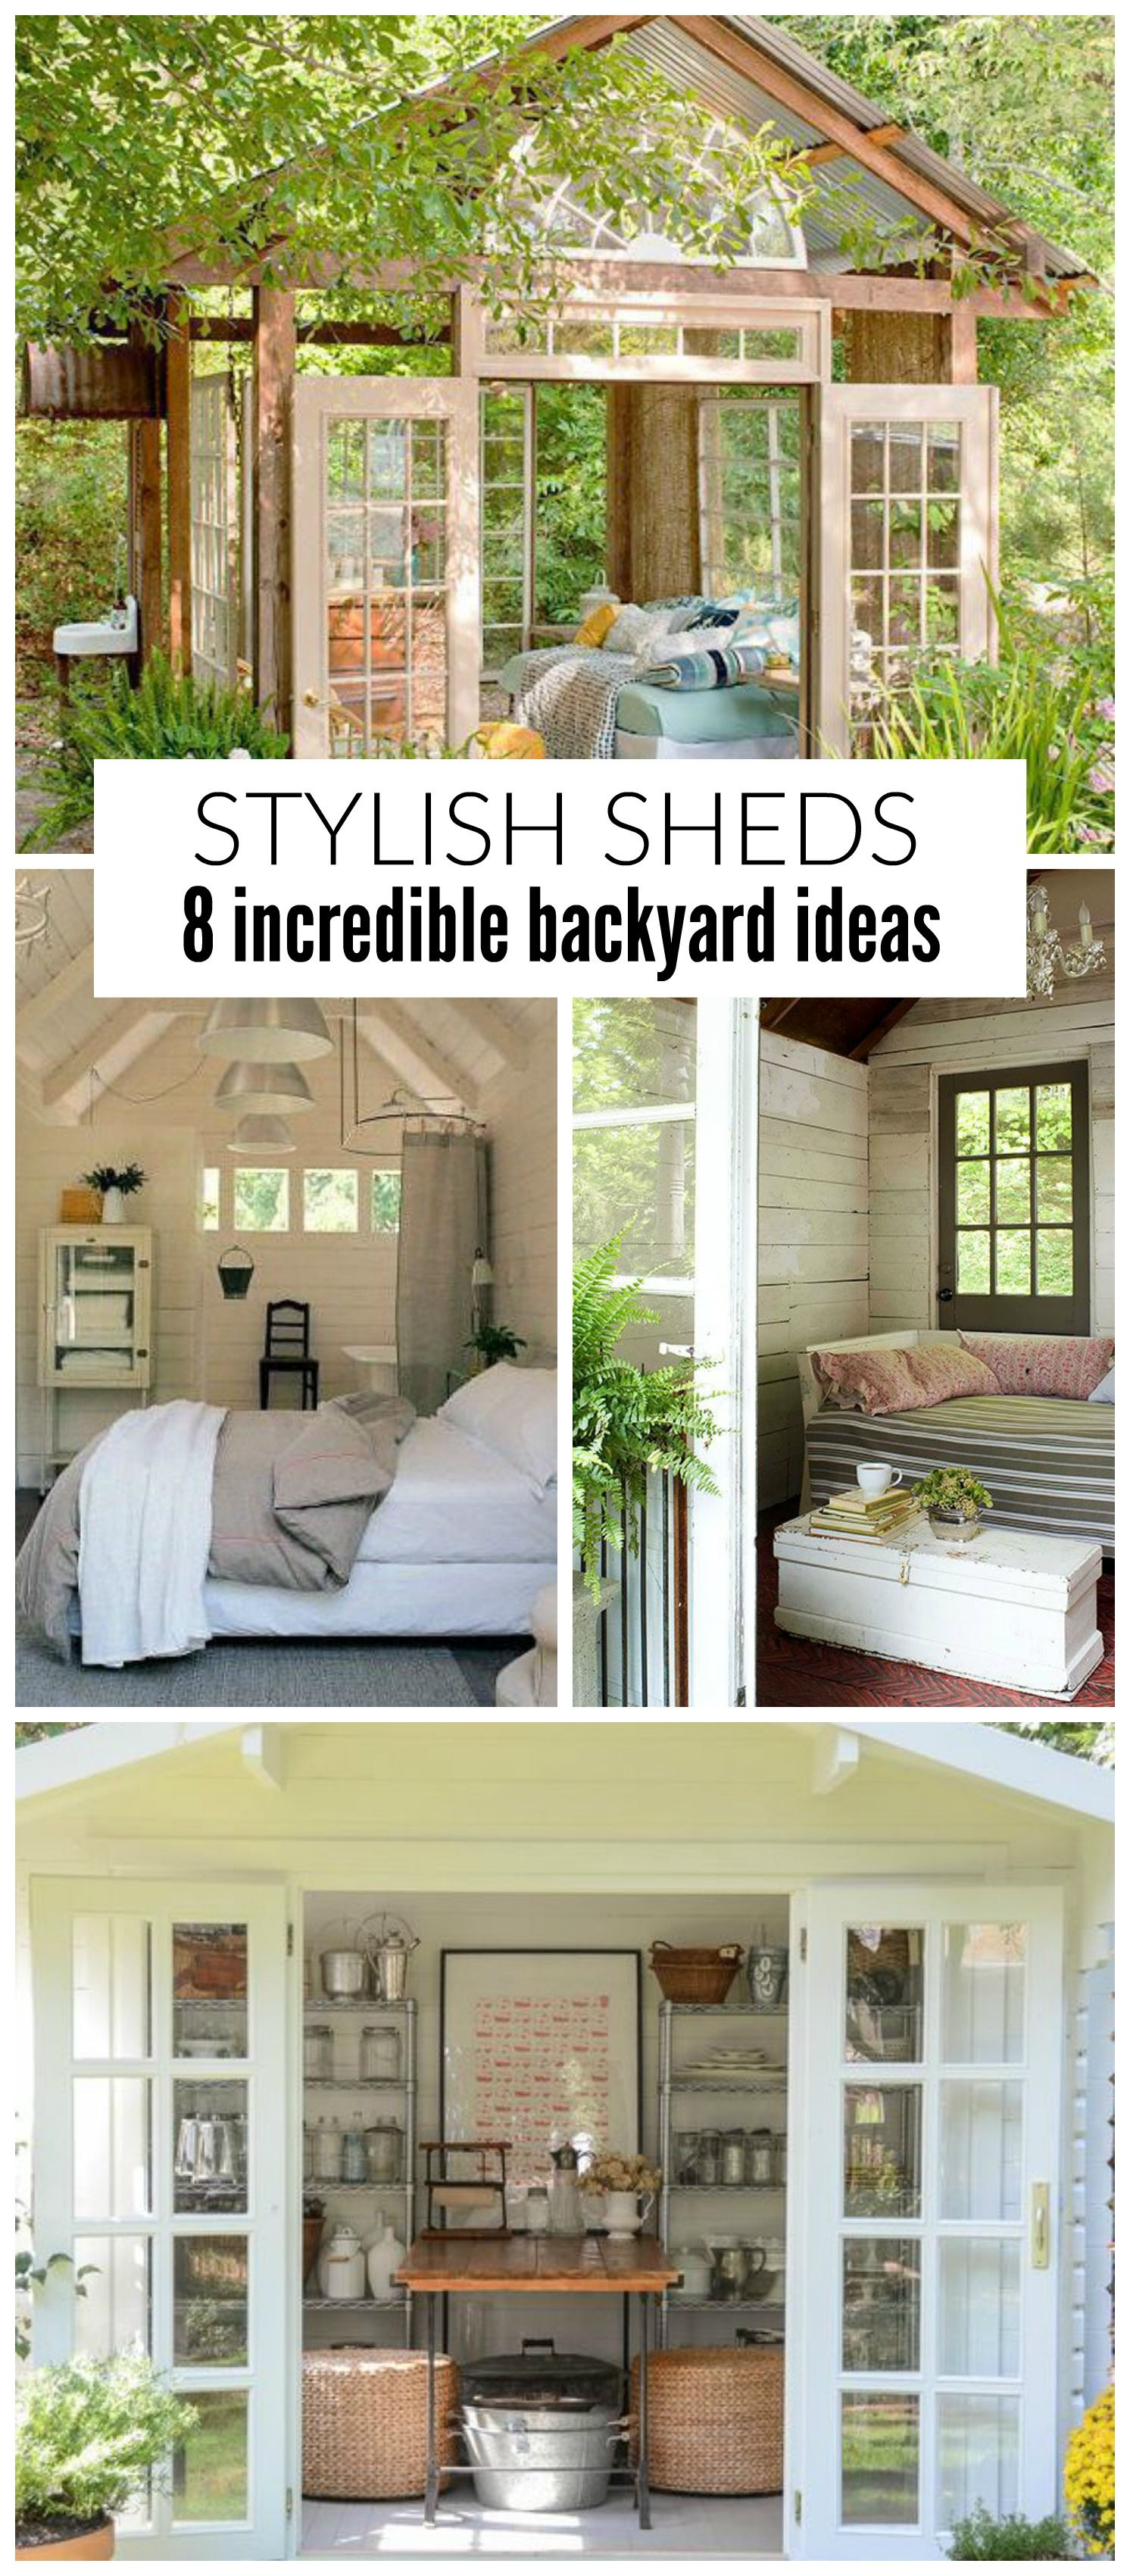 Stylish Sheds Stylish Sheds 8 Incredible Backyard Ideas Awesome Outdoor Spaces